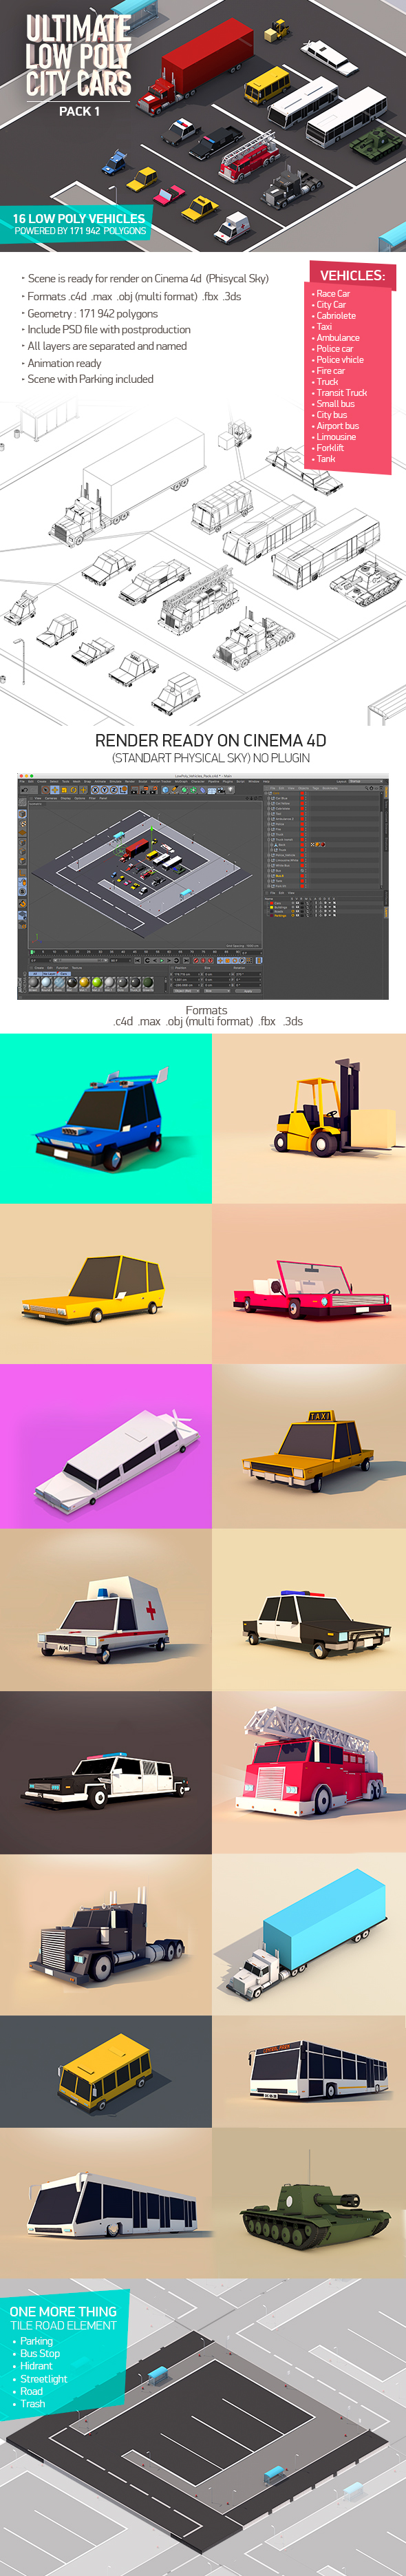 Ultimate Low Poly City Cars Pack - 3DOcean Item for Sale